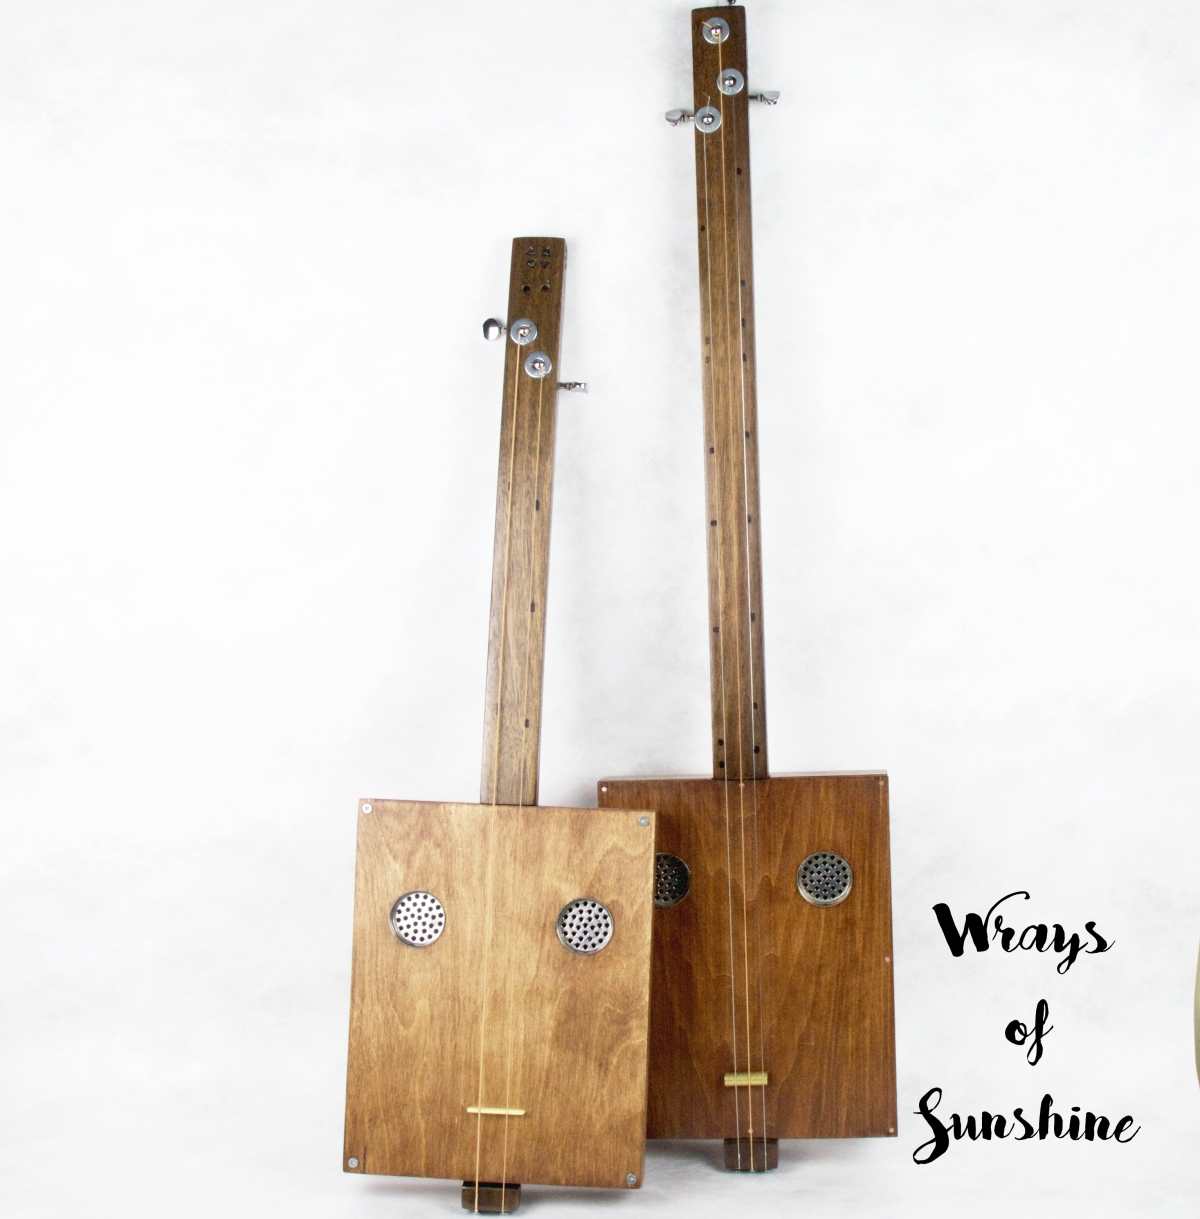 Make: Honeybee's Handmade Instruments